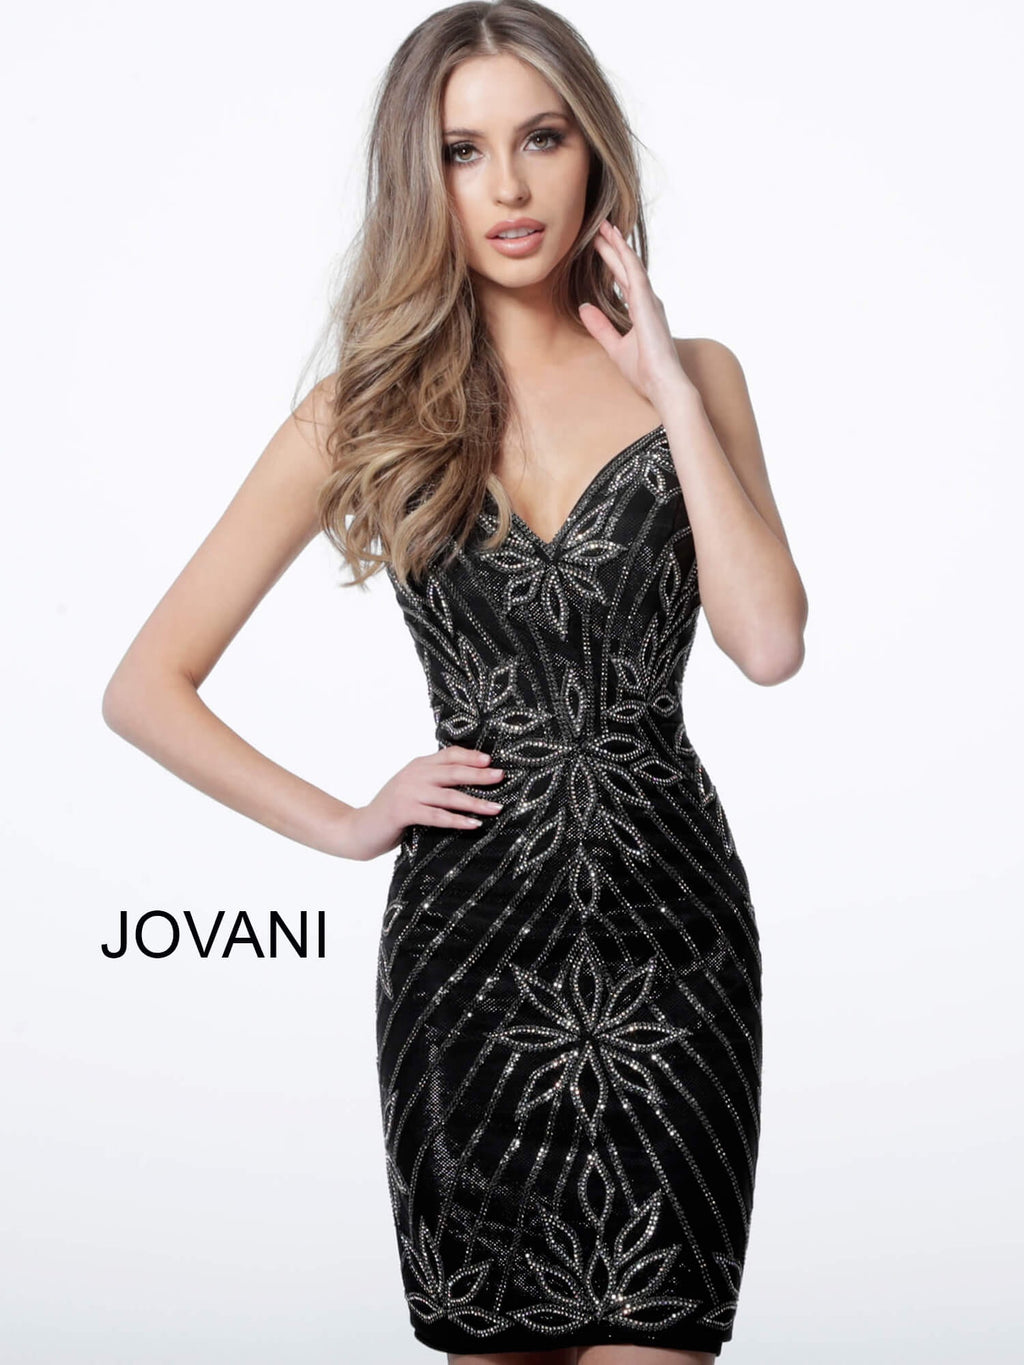 JOVANI 4391 Embellished Cocktail Dress - CYC Boutique